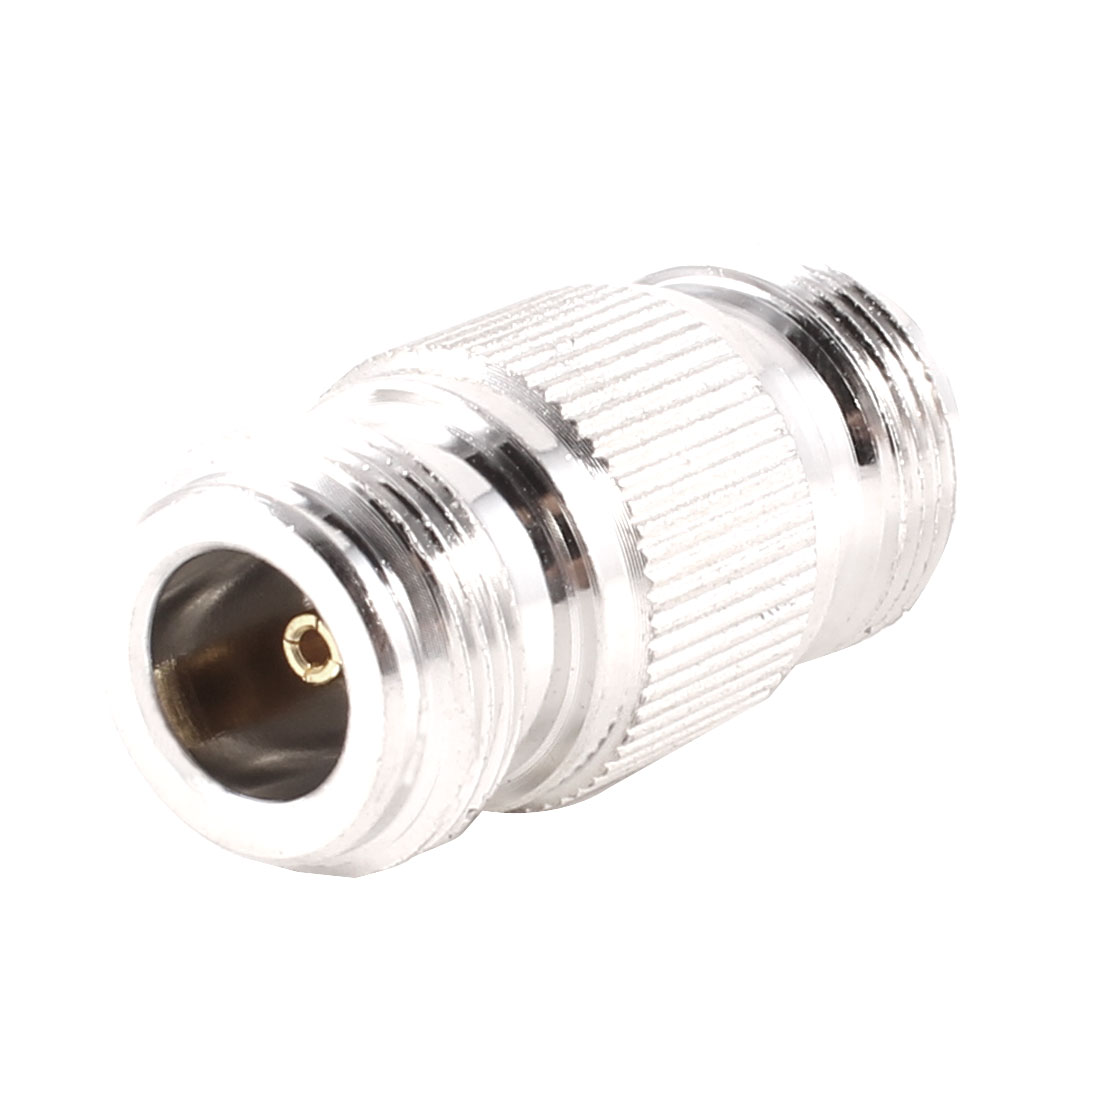 UXCELL Pack Size(L*W*H) Silver Tone N Female Jack To N Female Plug Rf Coaxial Connectors 1.7   10   14   x(China (Mainland))